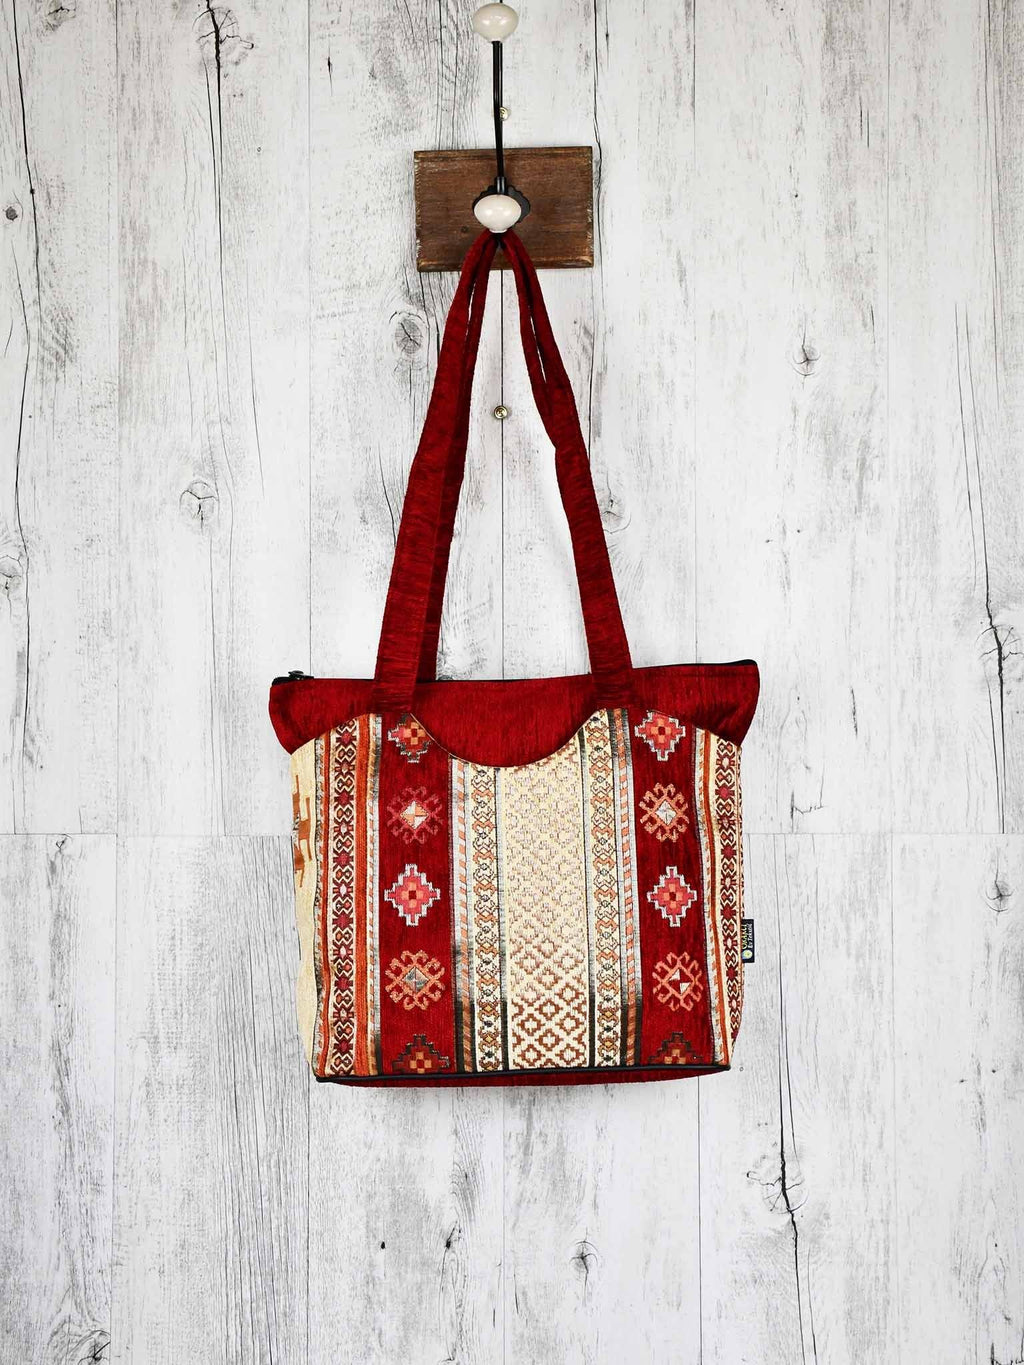 Turkish Handbag Tote Aztec Red Beige Textile Sydney Grand Bazaar